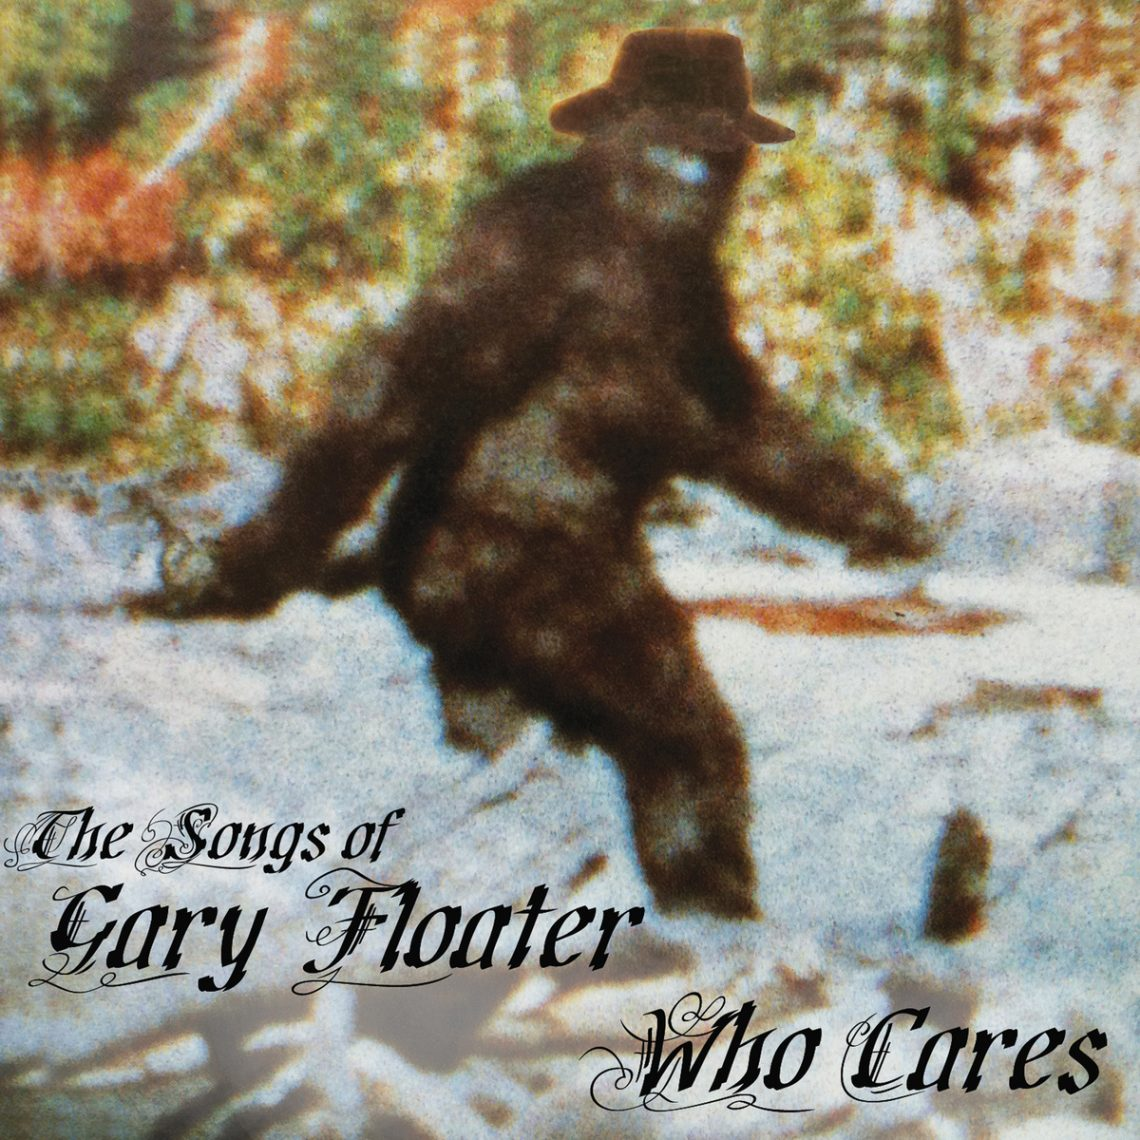 Gary Floater Who Cares